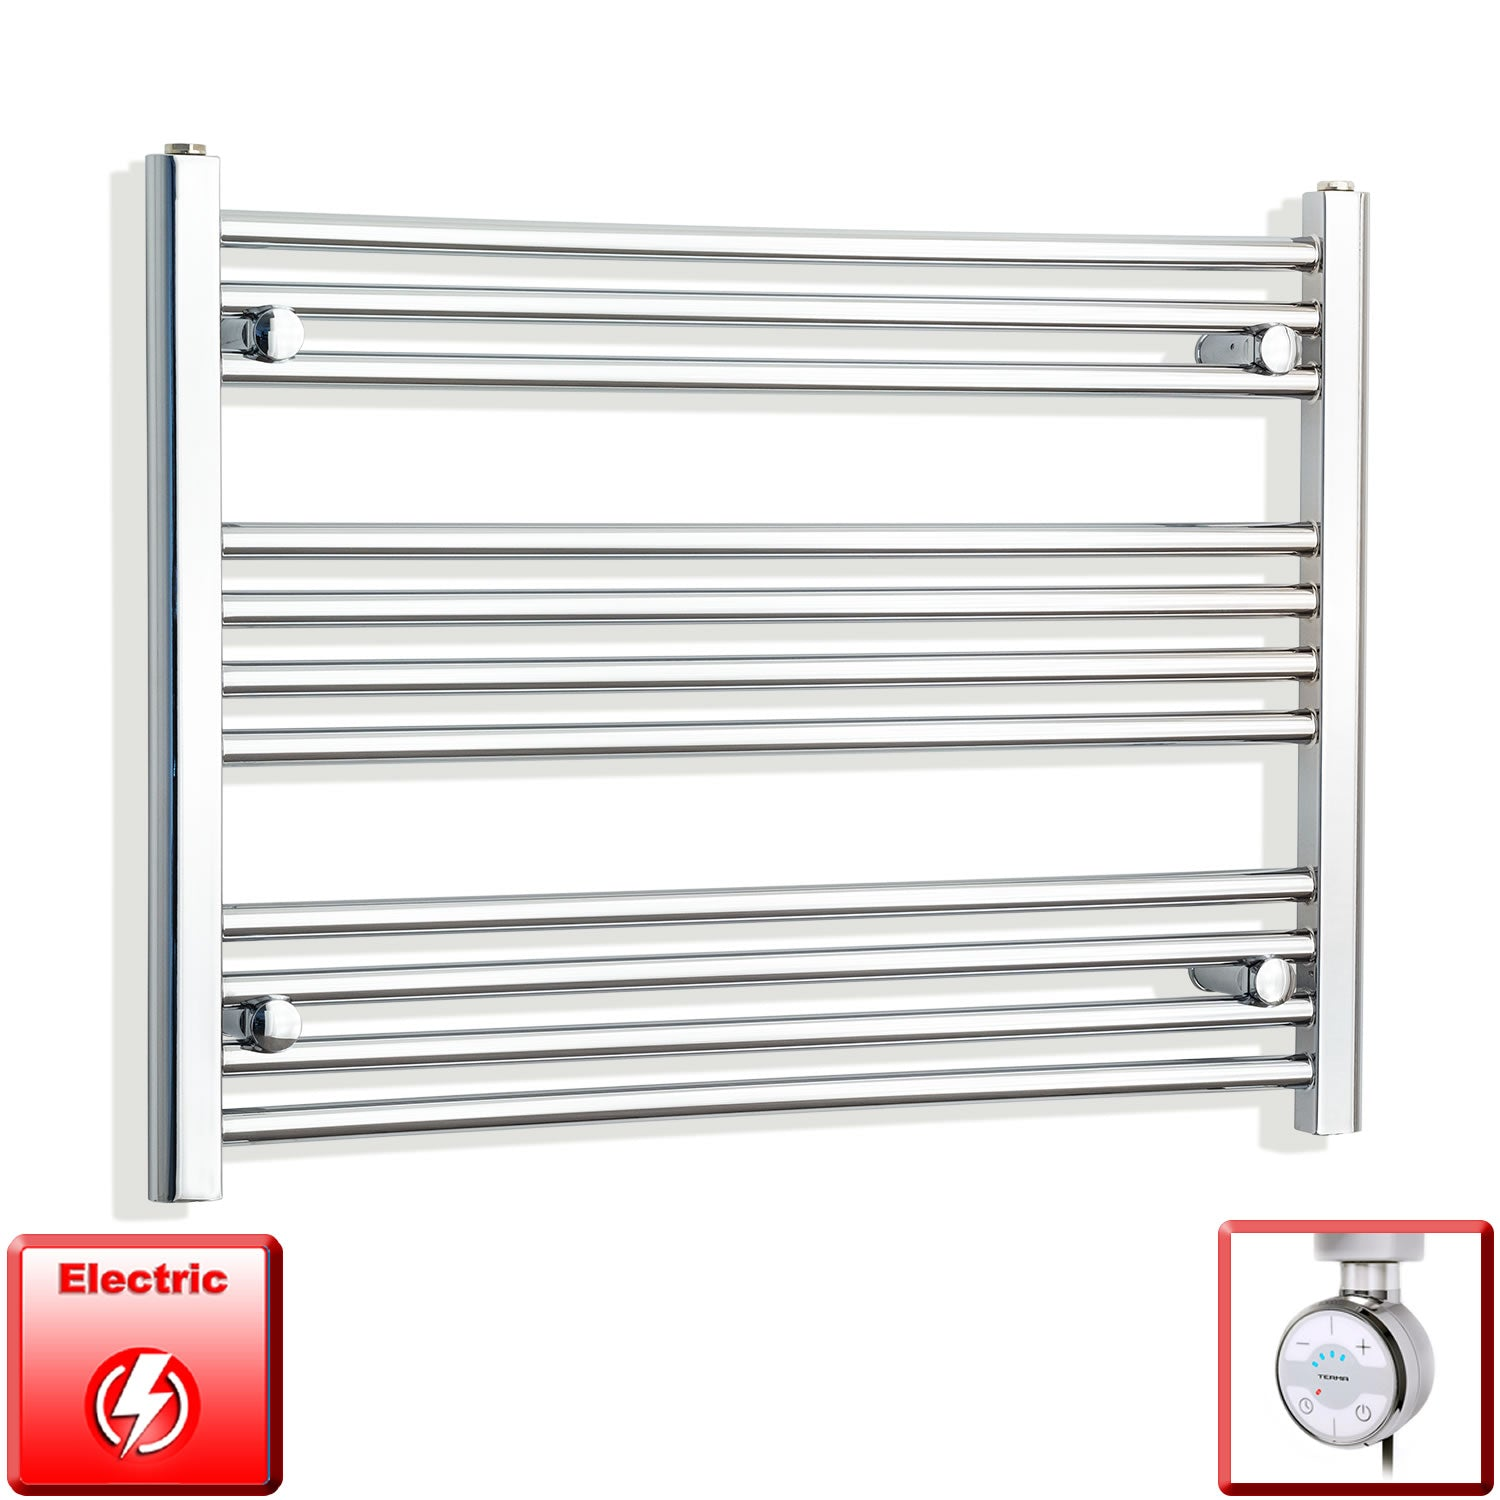 900mm Wide 600mm High Pre-Filled Chrome Electric Towel Rail Radiator With Thermostatic MOA Element